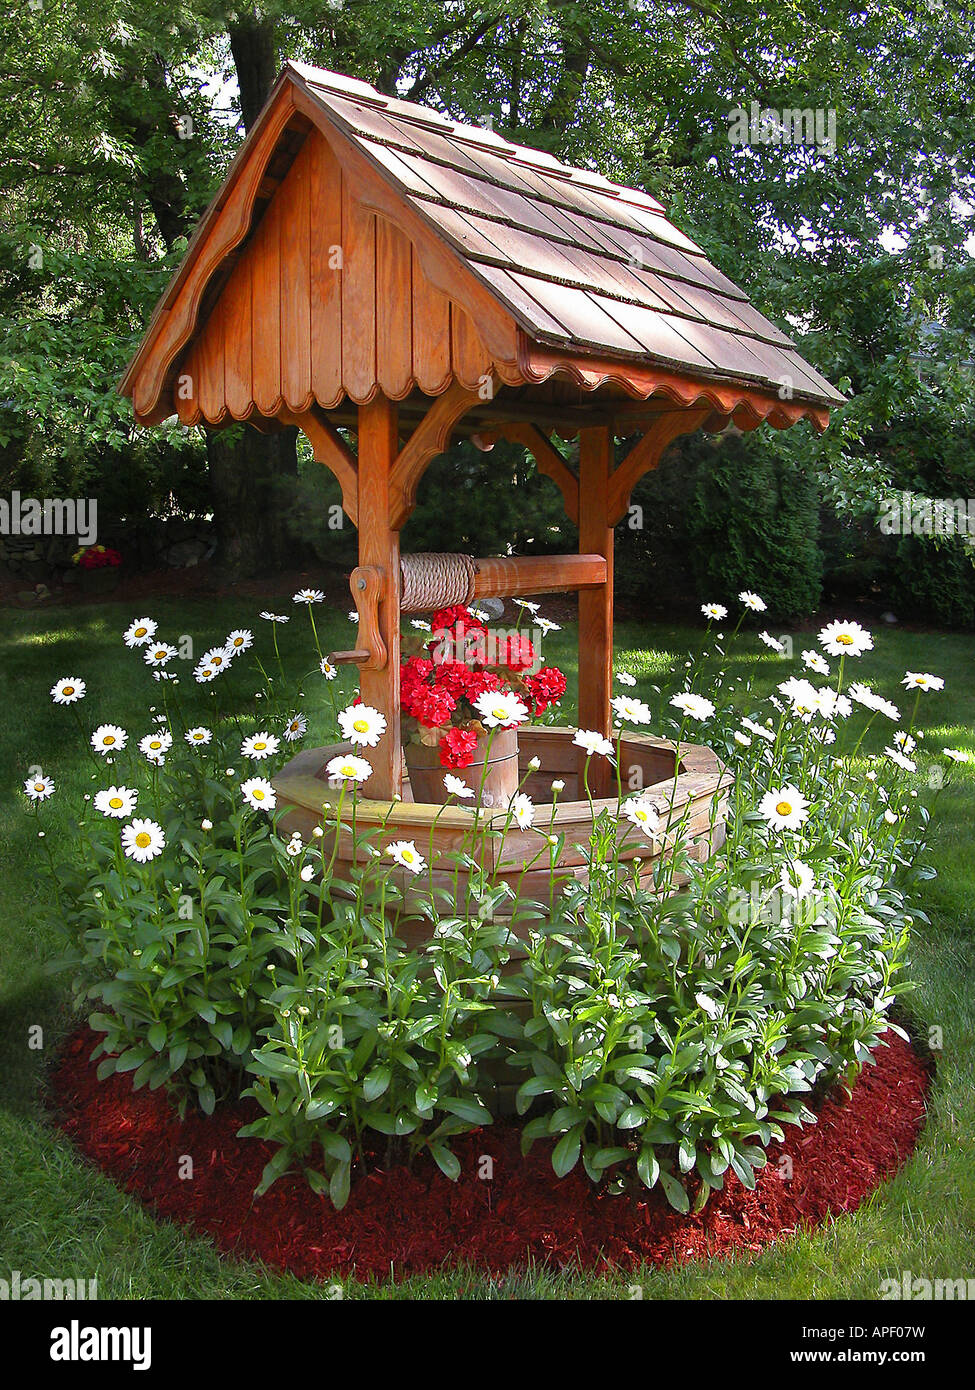 Garden designs with bridges and wishing wells landscaping ideas - Wishing Well Made Of Cedar Wood With White Flowers Around In Green Manicured Garden